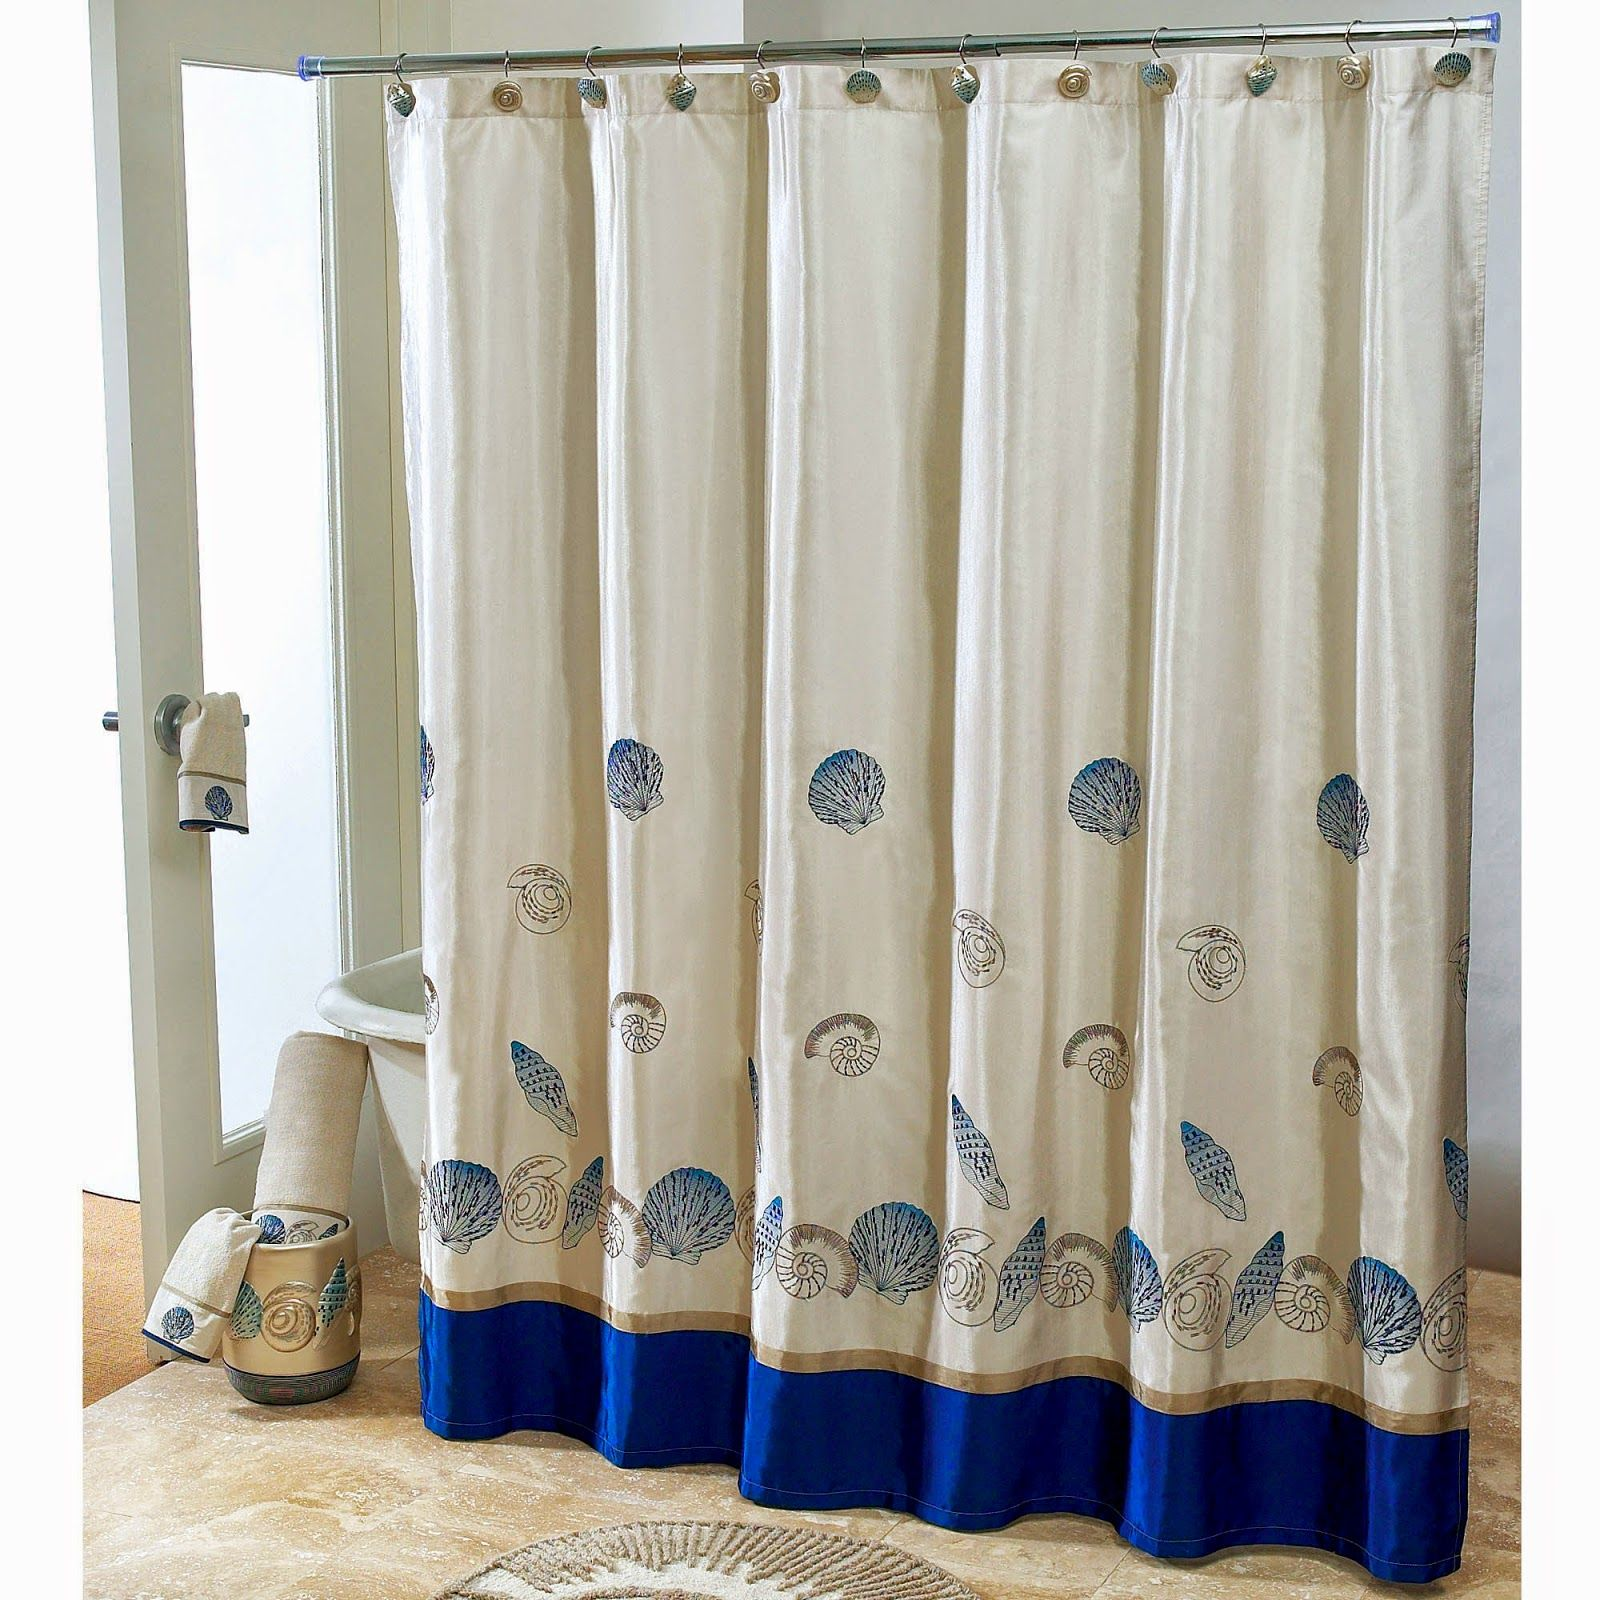 Nautical Bathroom Window Curtains Ideas Pinterest Bathroom - Nautical bathroom window curtains